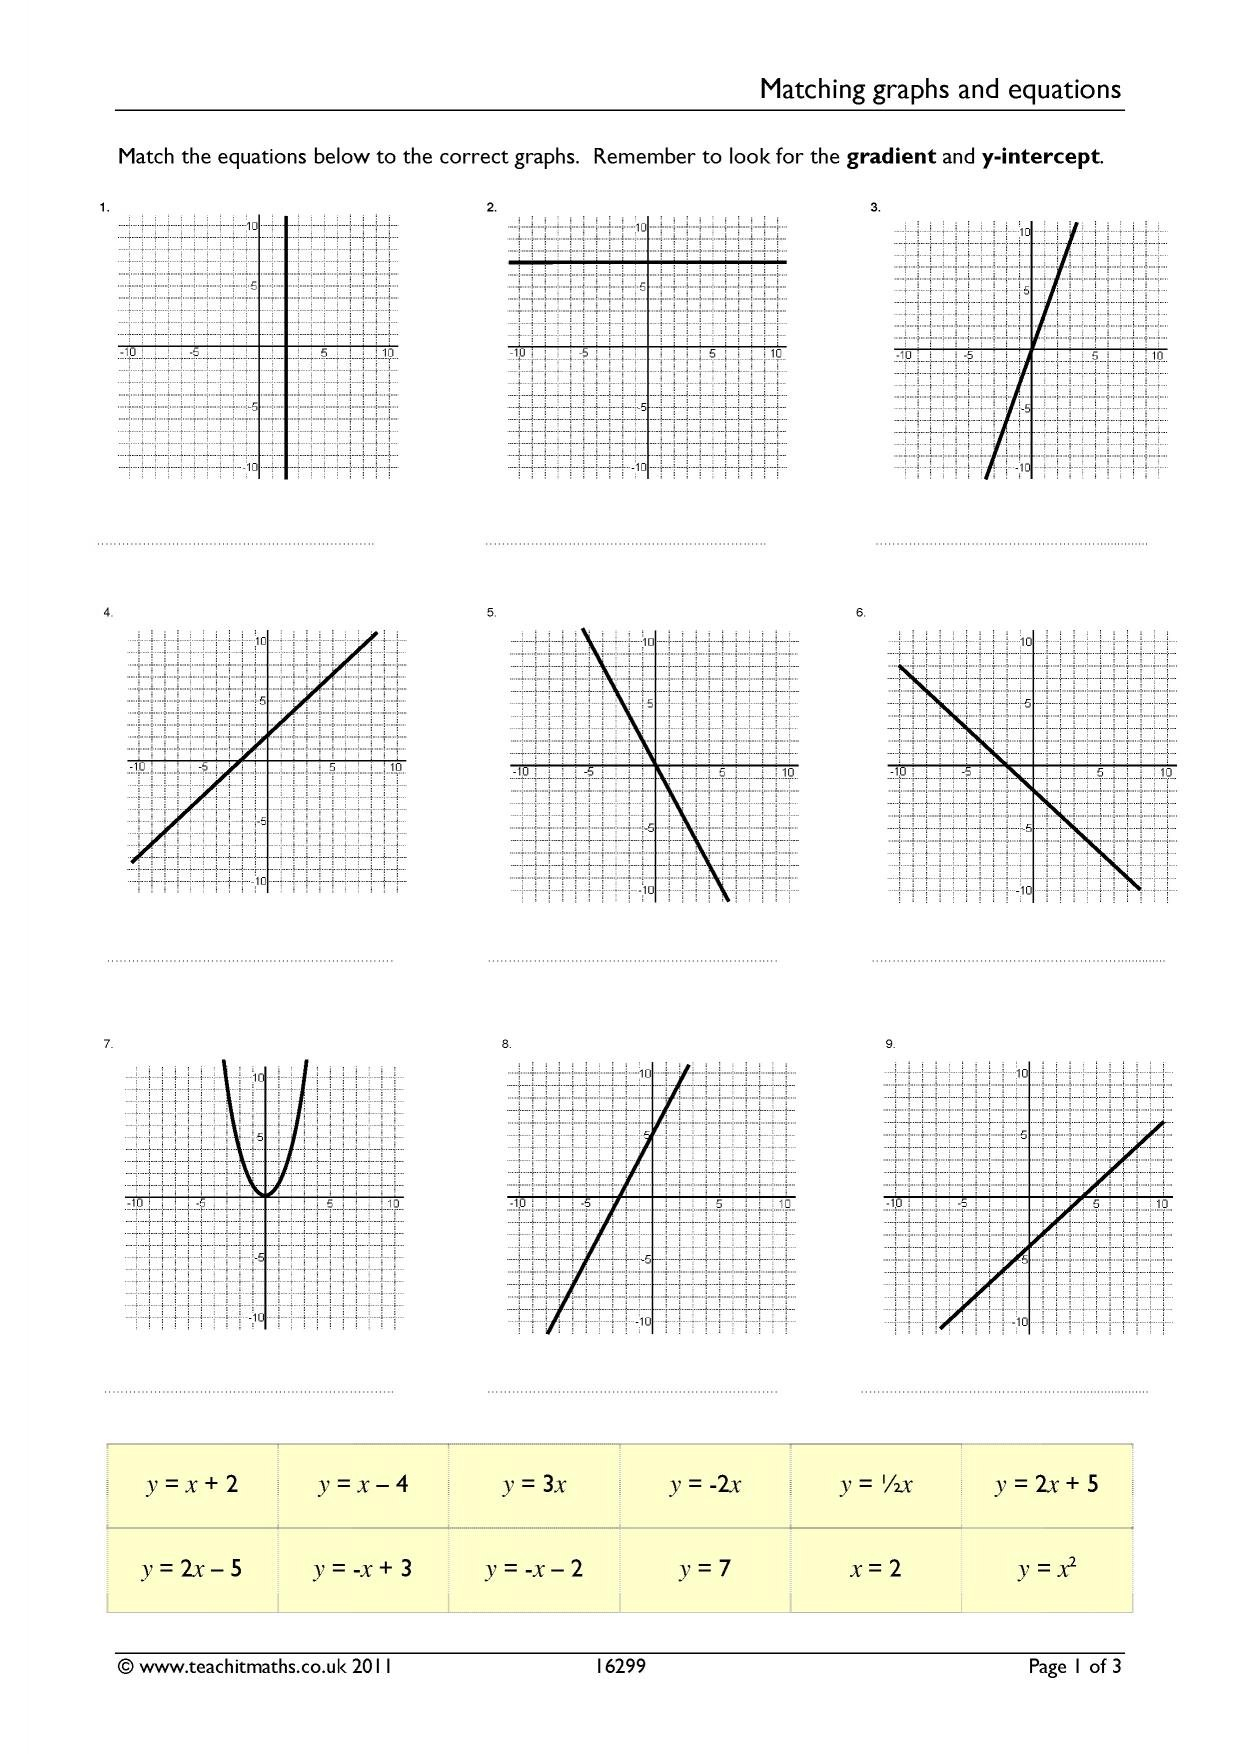 Matching Equations And Graphs Worksheet Answers